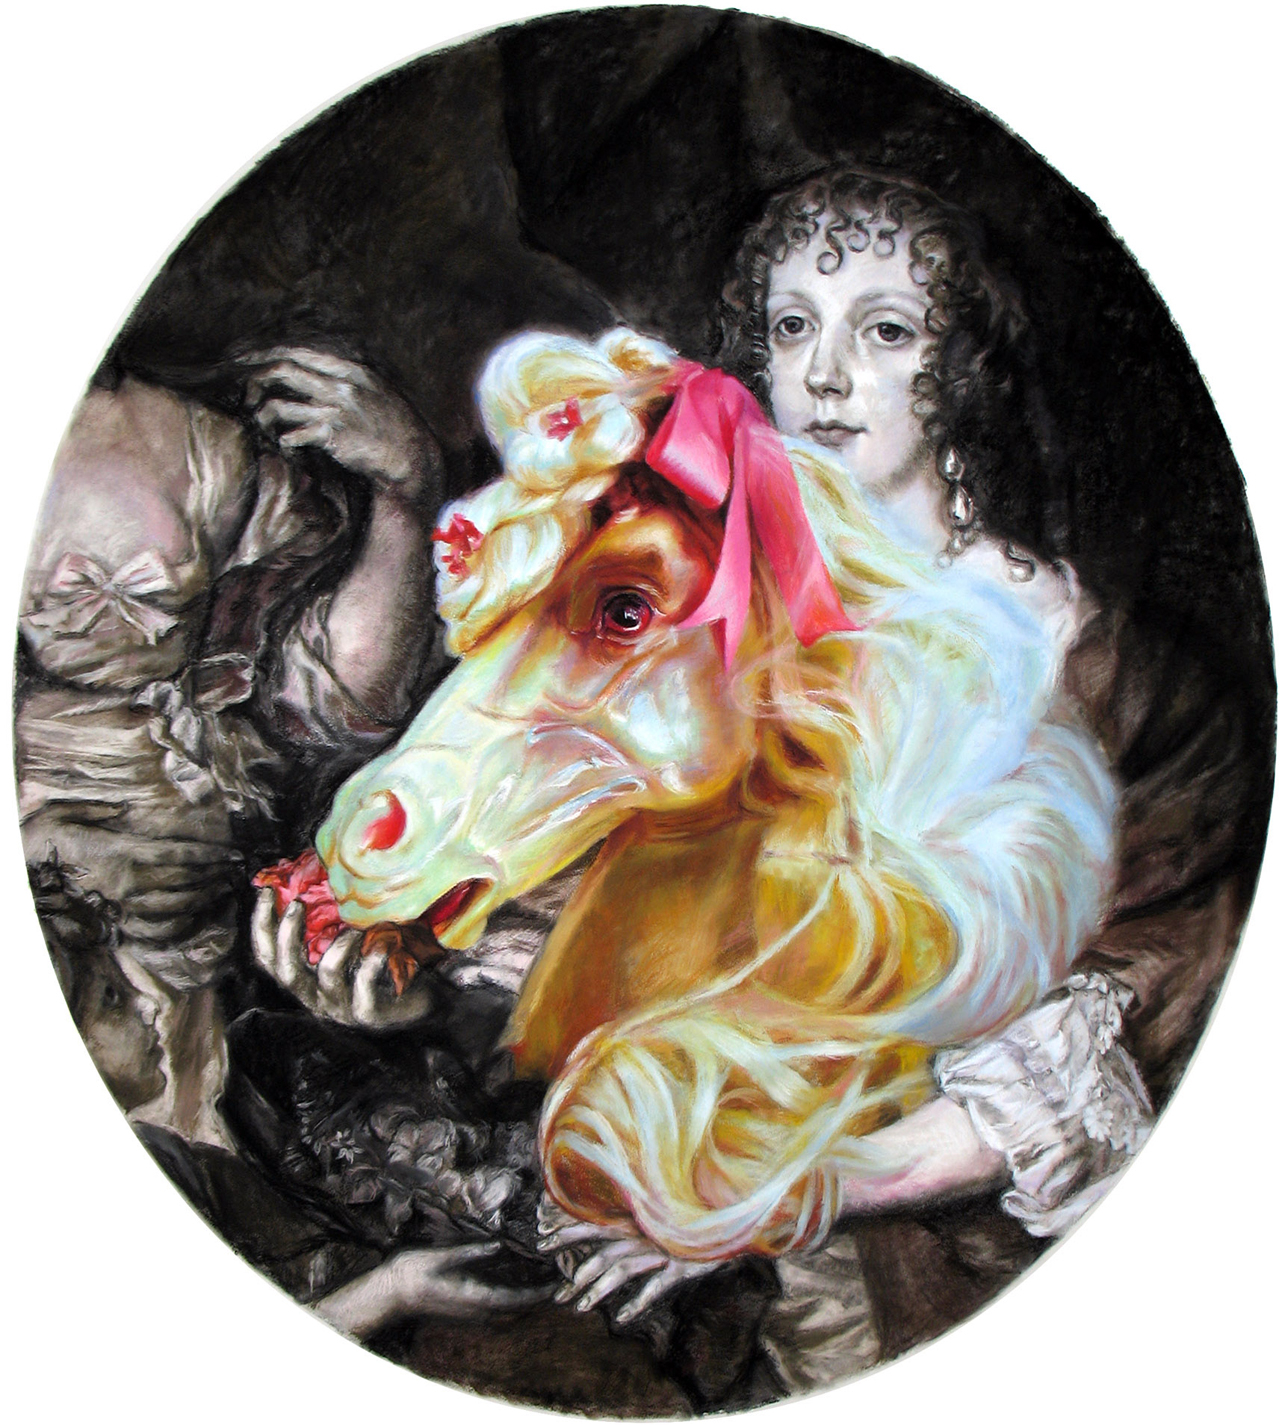 'The ladylike lady feeds her lap-horse beauty flowers' 150x135 cm, gouache, pastel and charcoal on paper, 2006